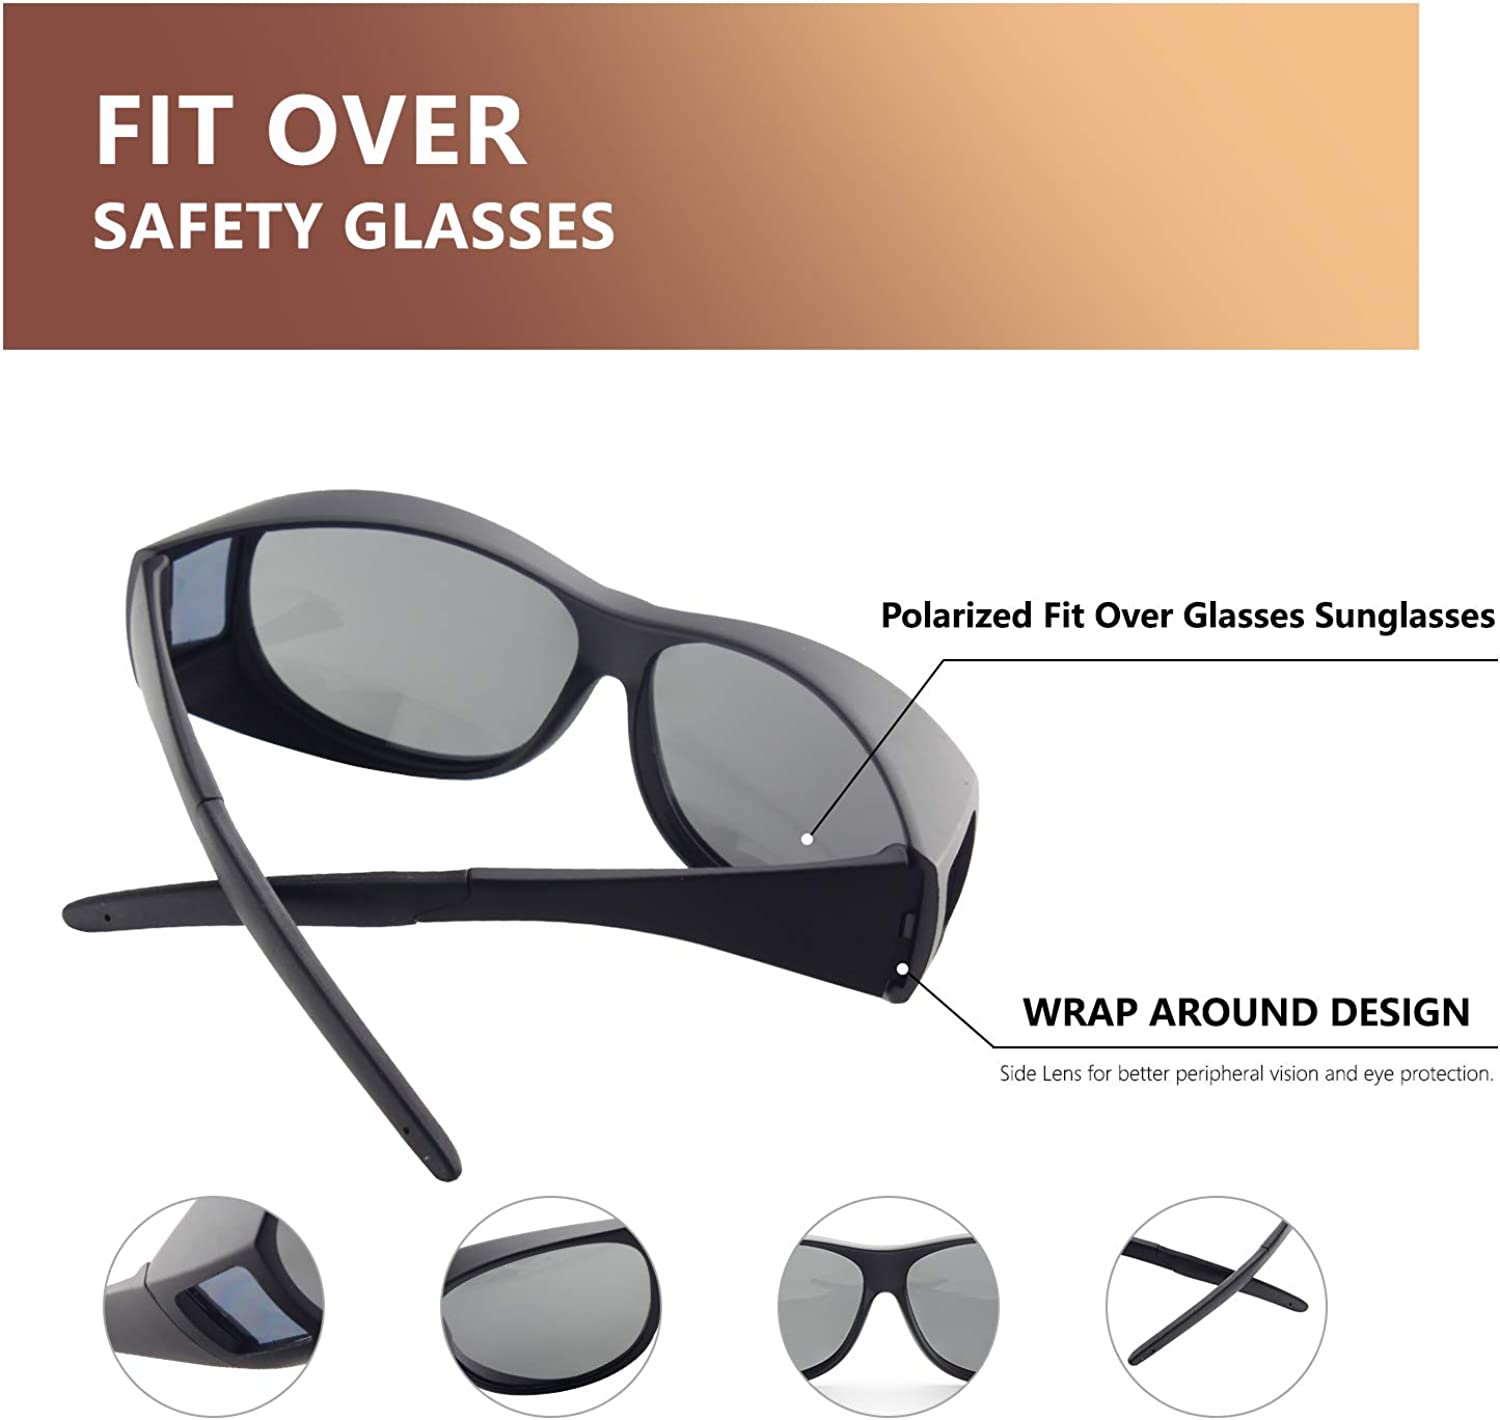 Xiyalai Fit Over Glasses Sunglasses with Polarized Lenses for Men and Women